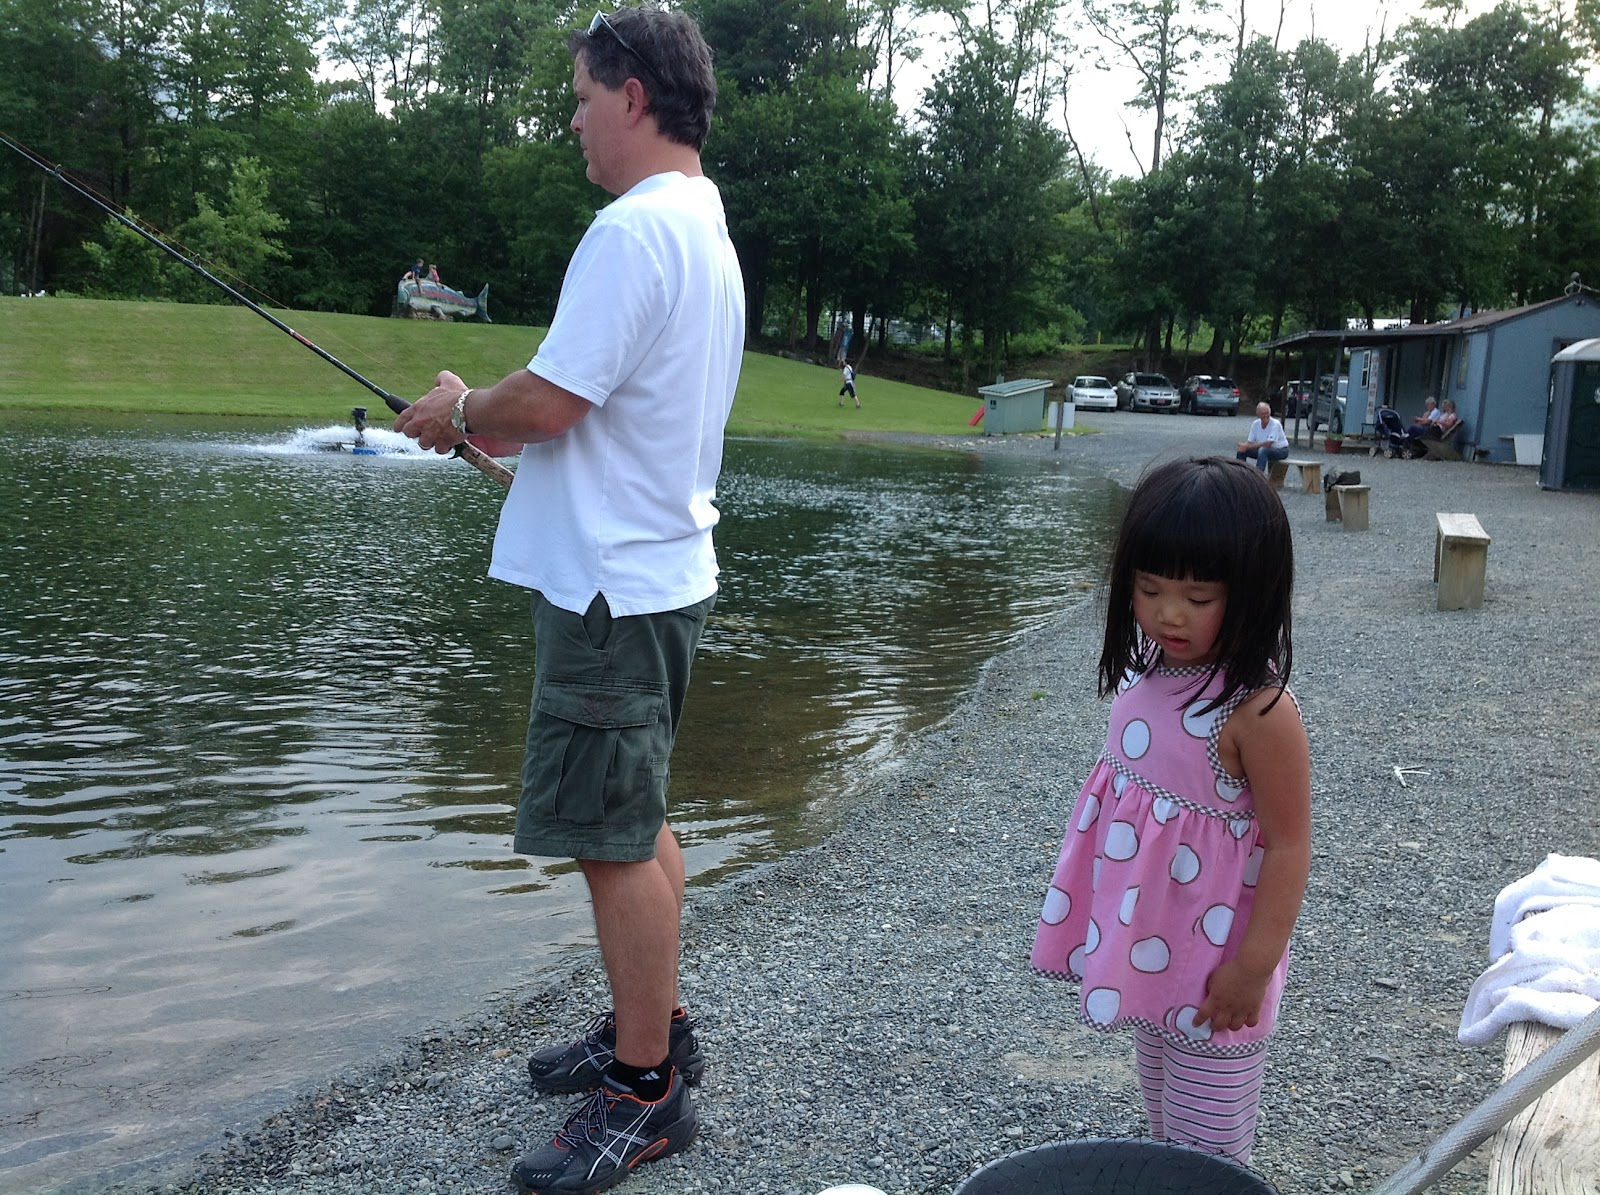 The sharps eden 39 s first camping trip in the nc mountains 2012 - Trout farming business family mountains ...